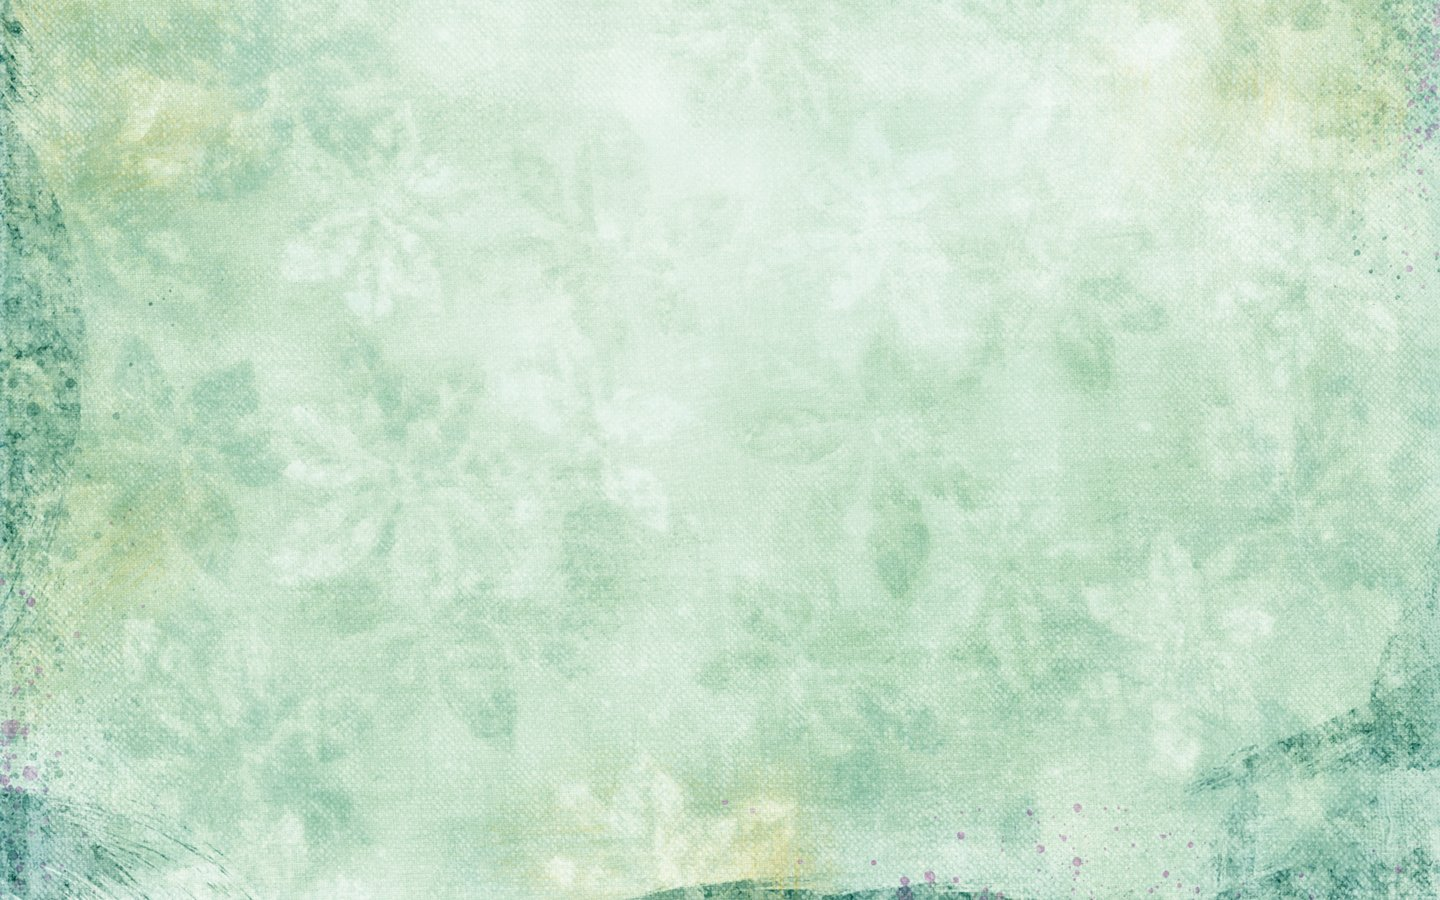 FreeGreatPicturecom 19865 green vintage wallpaper 1440x900